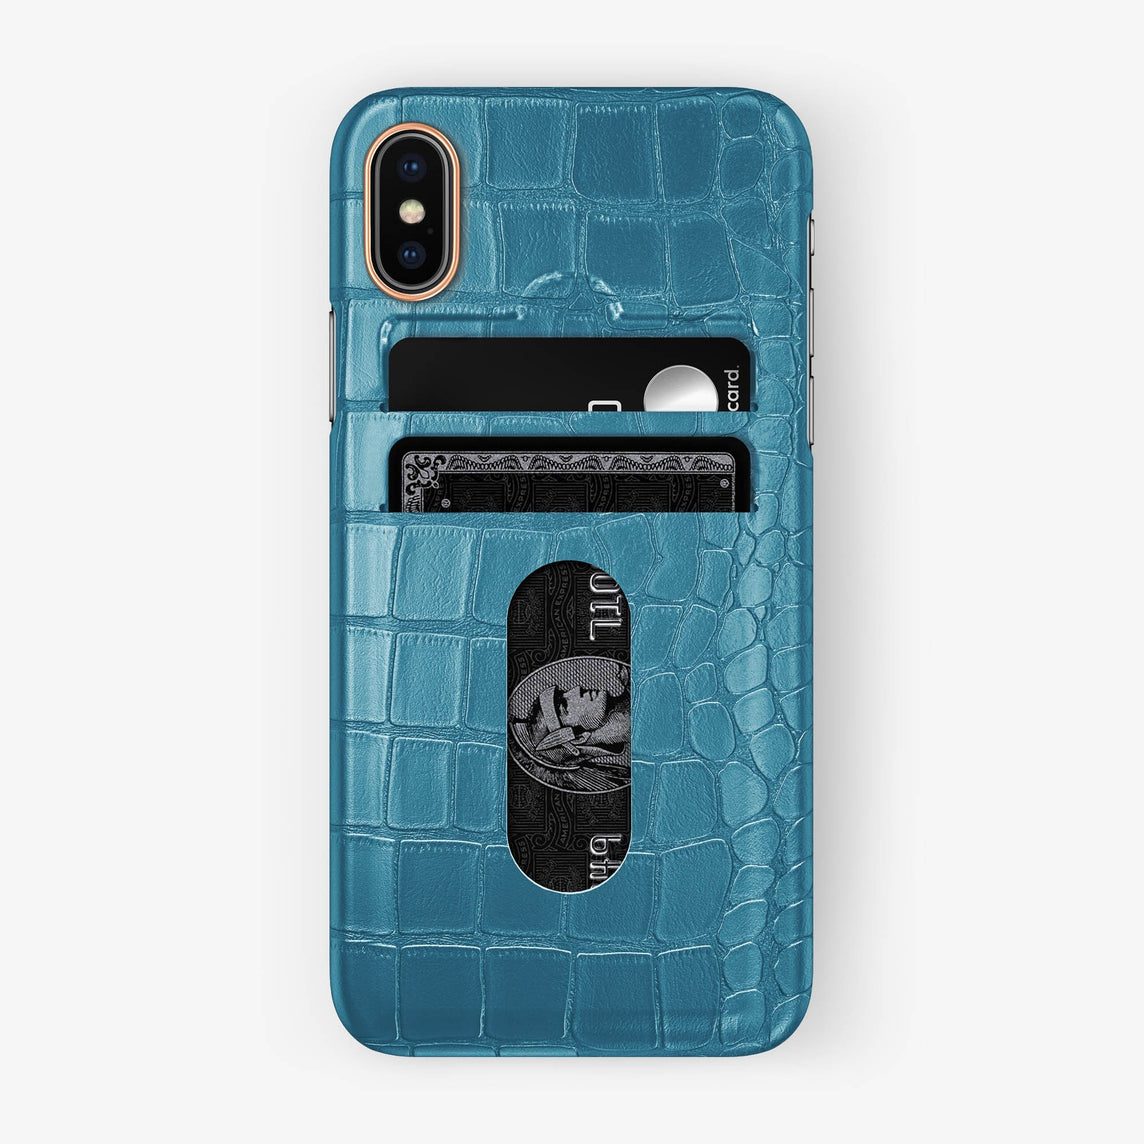 Alligator Card Holder Case iPhone X/Xs | Teal - Rose Gold with-personalization